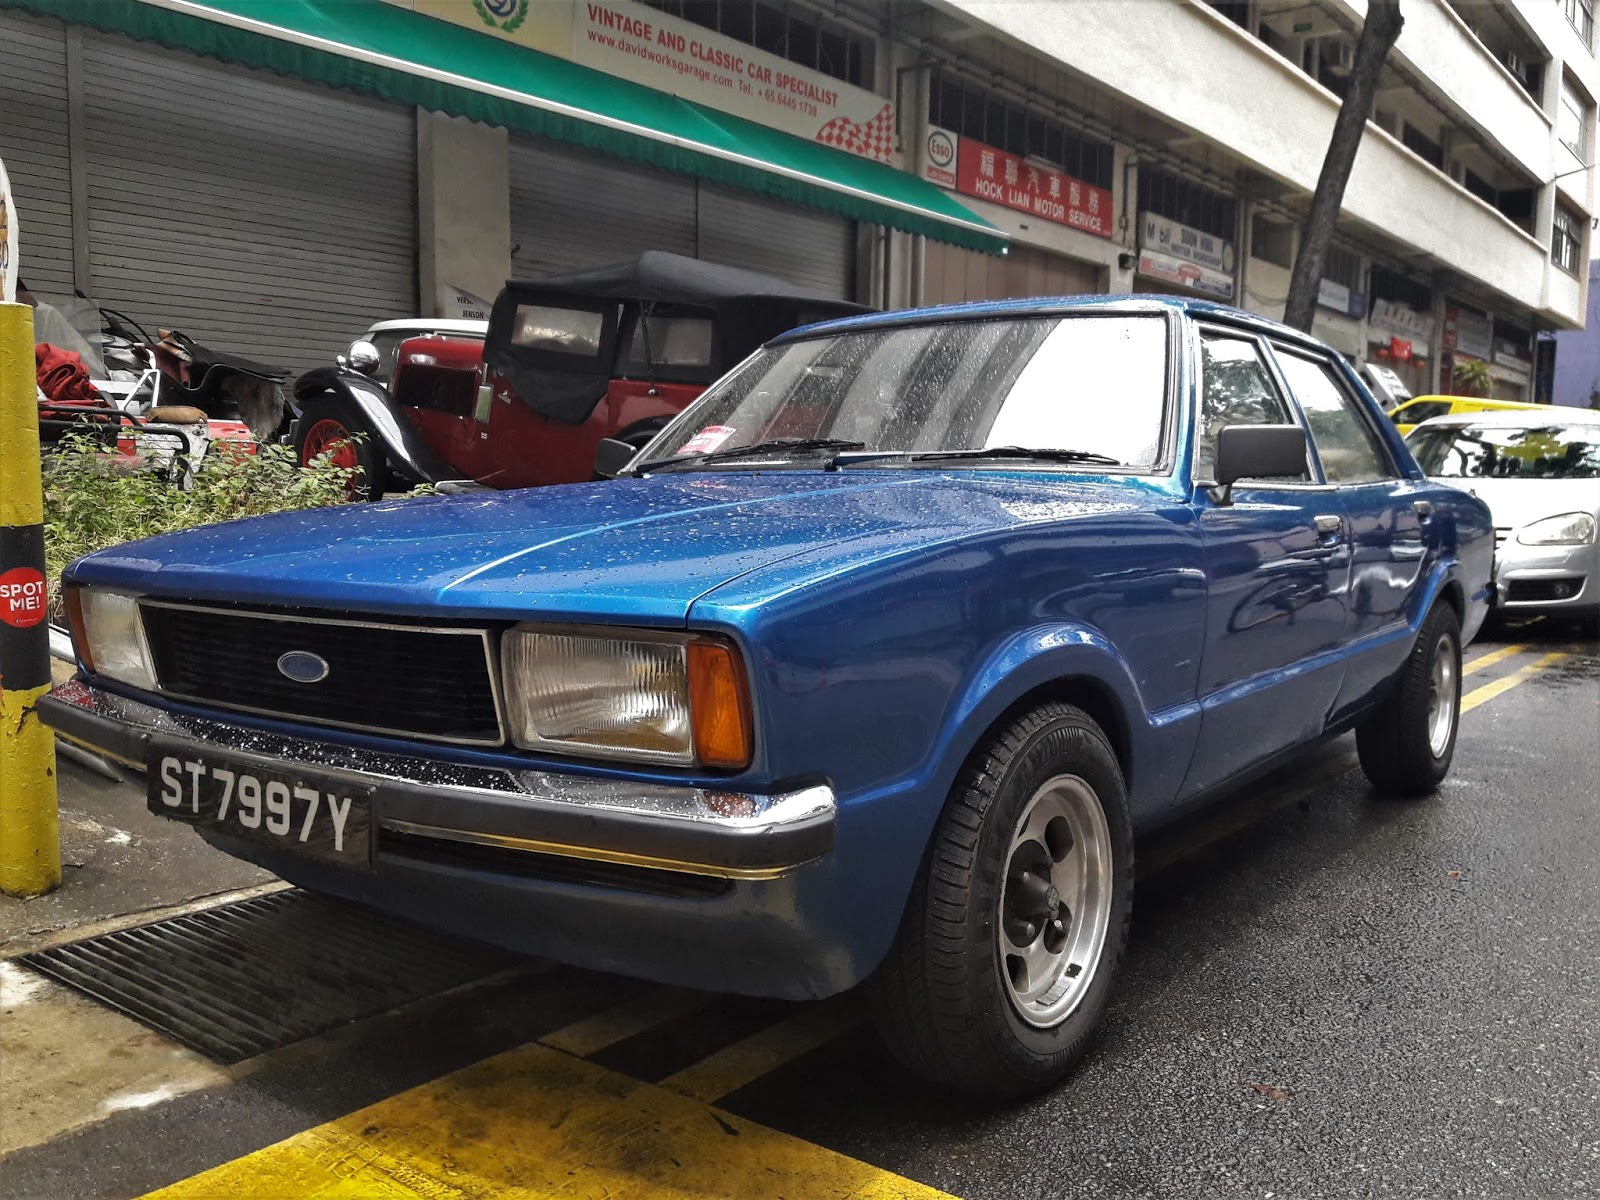 Singapore Vintage and Classic Cars: More than an old car #37: Ford ...